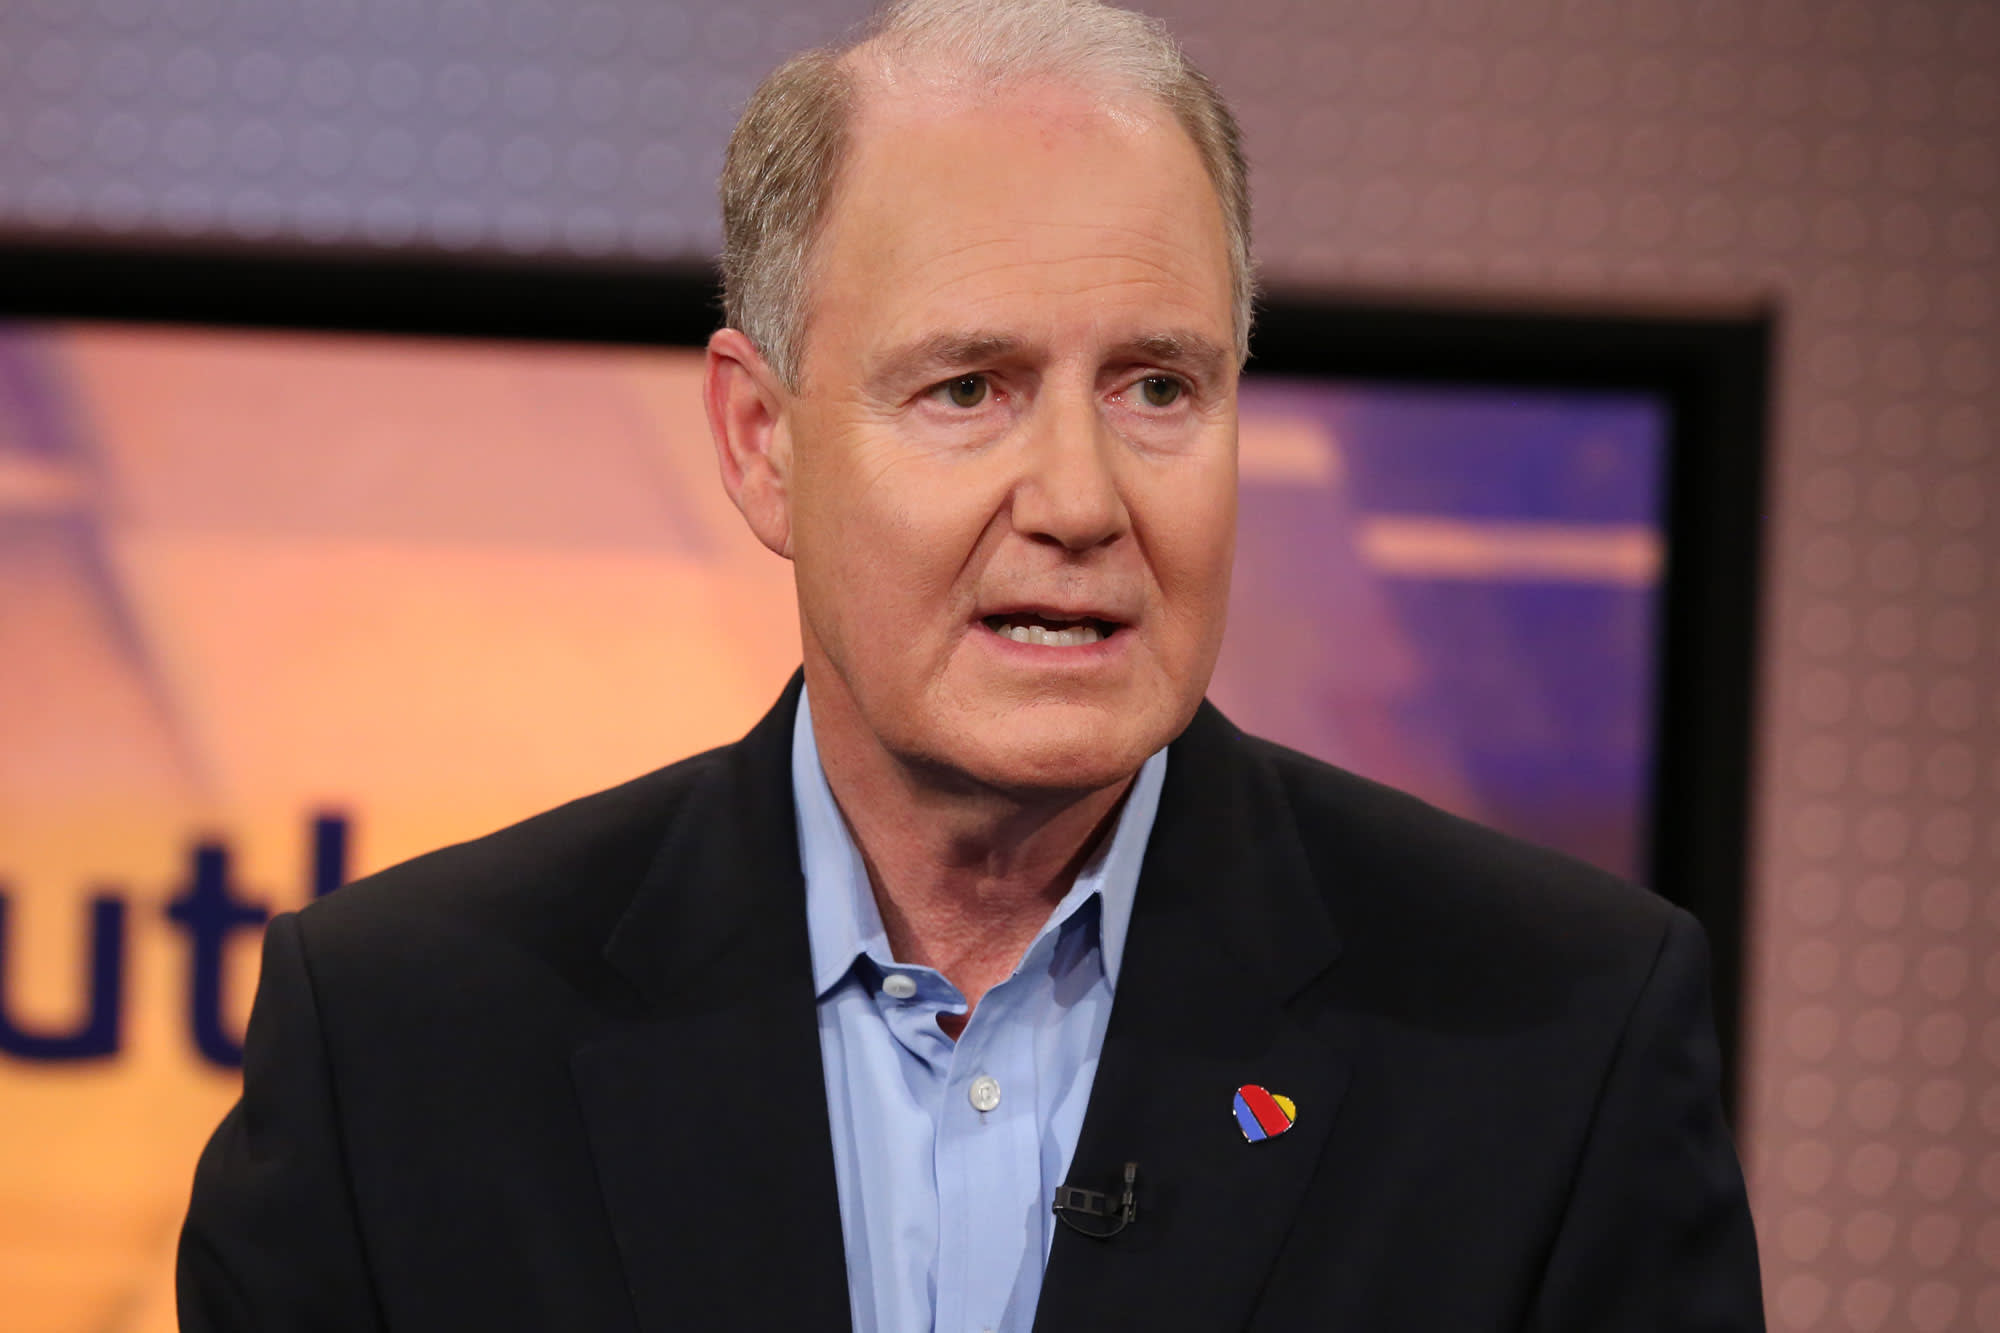 Southwest CEO Gary Kelly says he never wanted a mandate